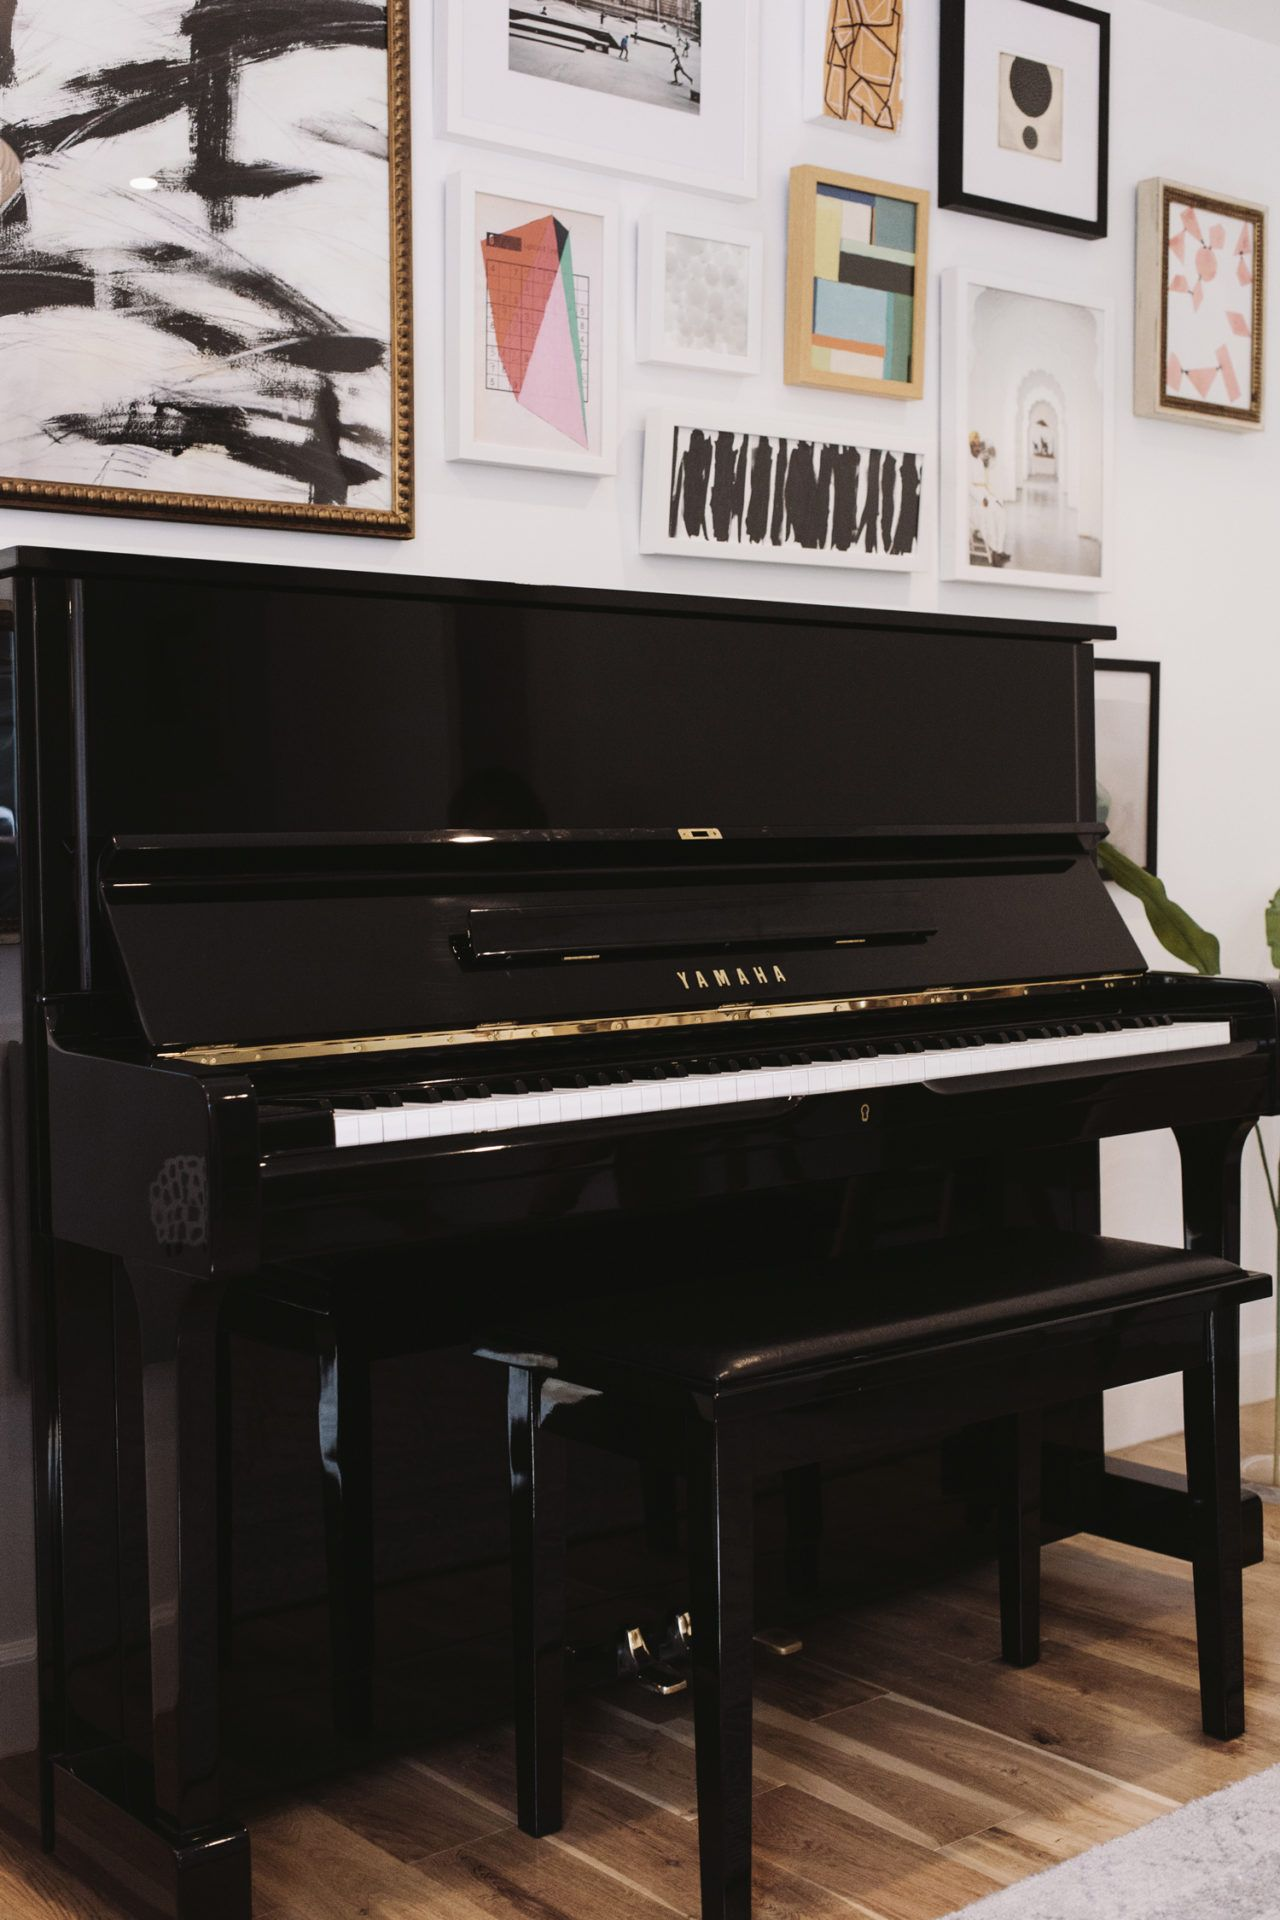 Polly's Piano Room images